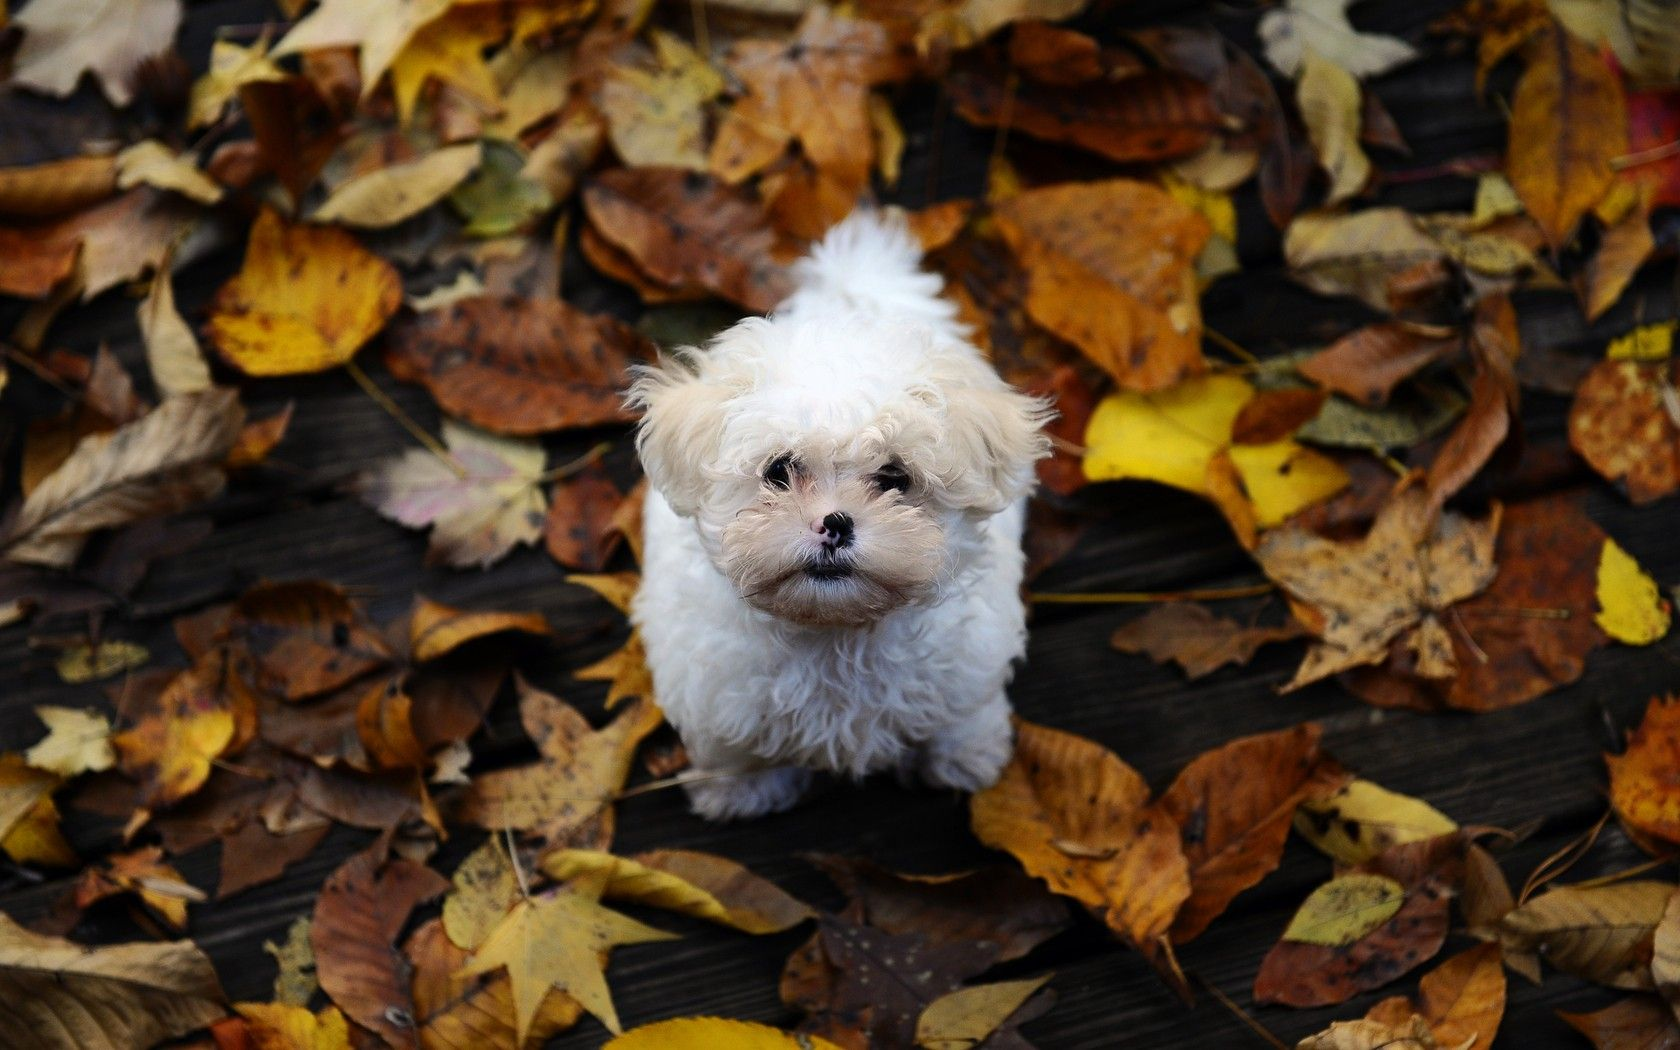 Aww puppy looks lonely photos pinterest high quality